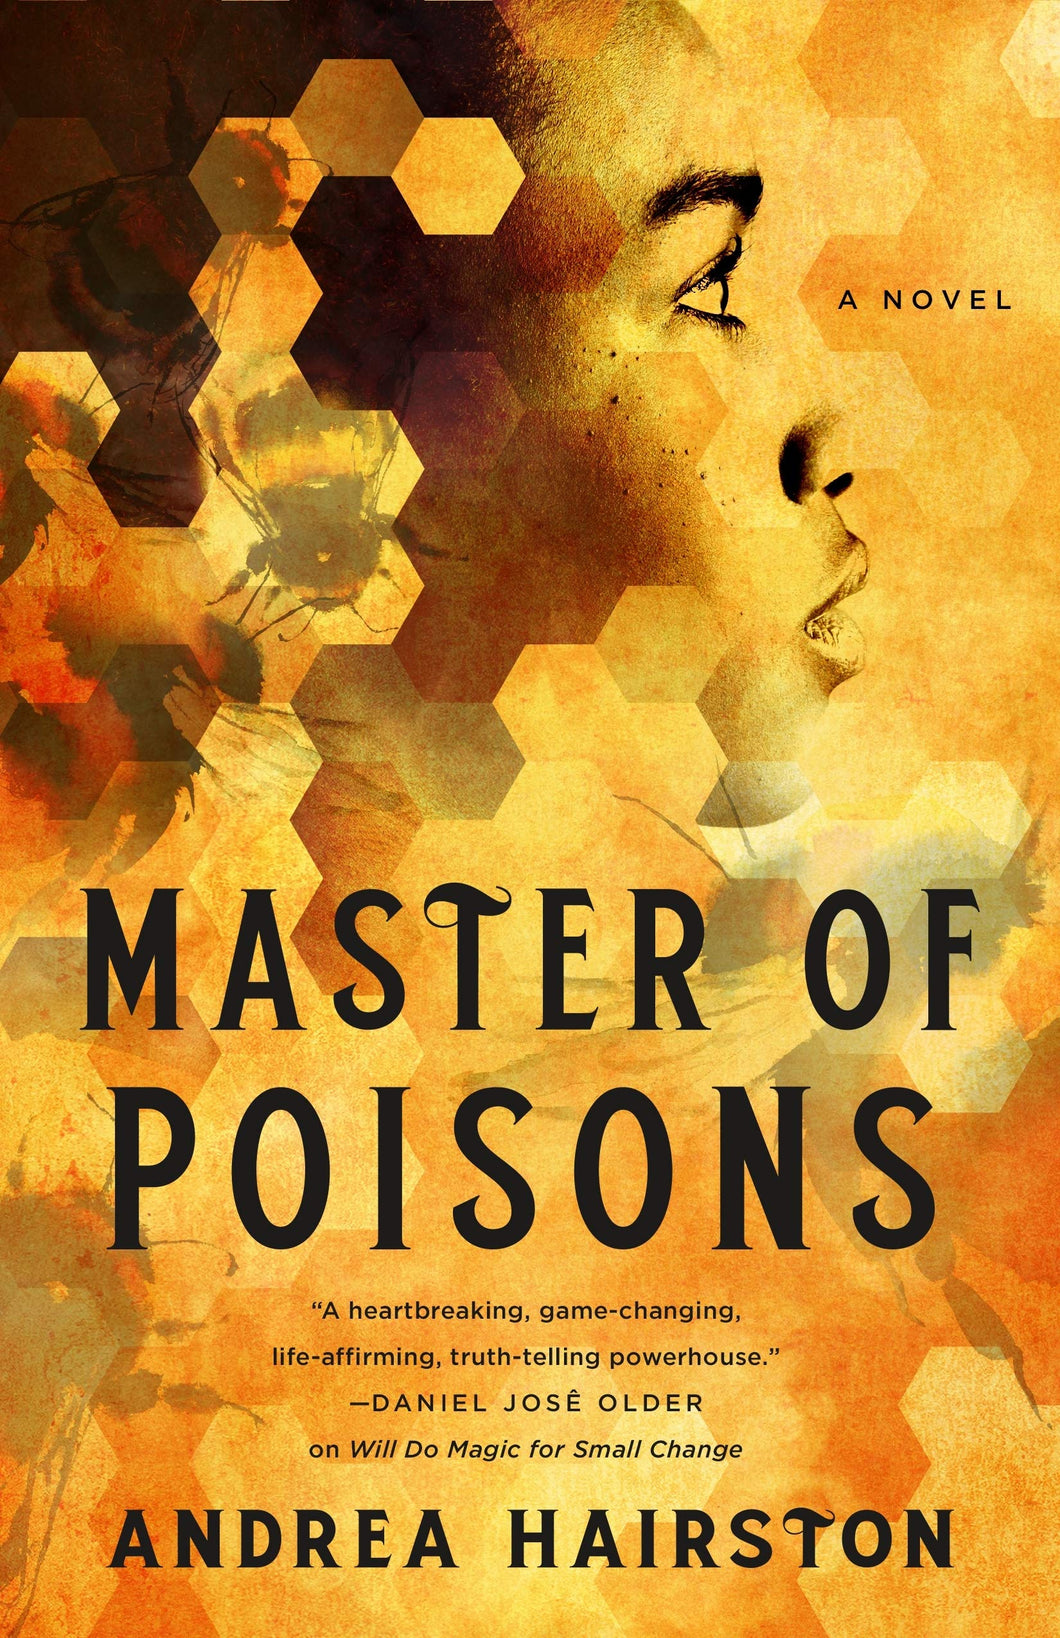 Master of Poisons (Hardcover)